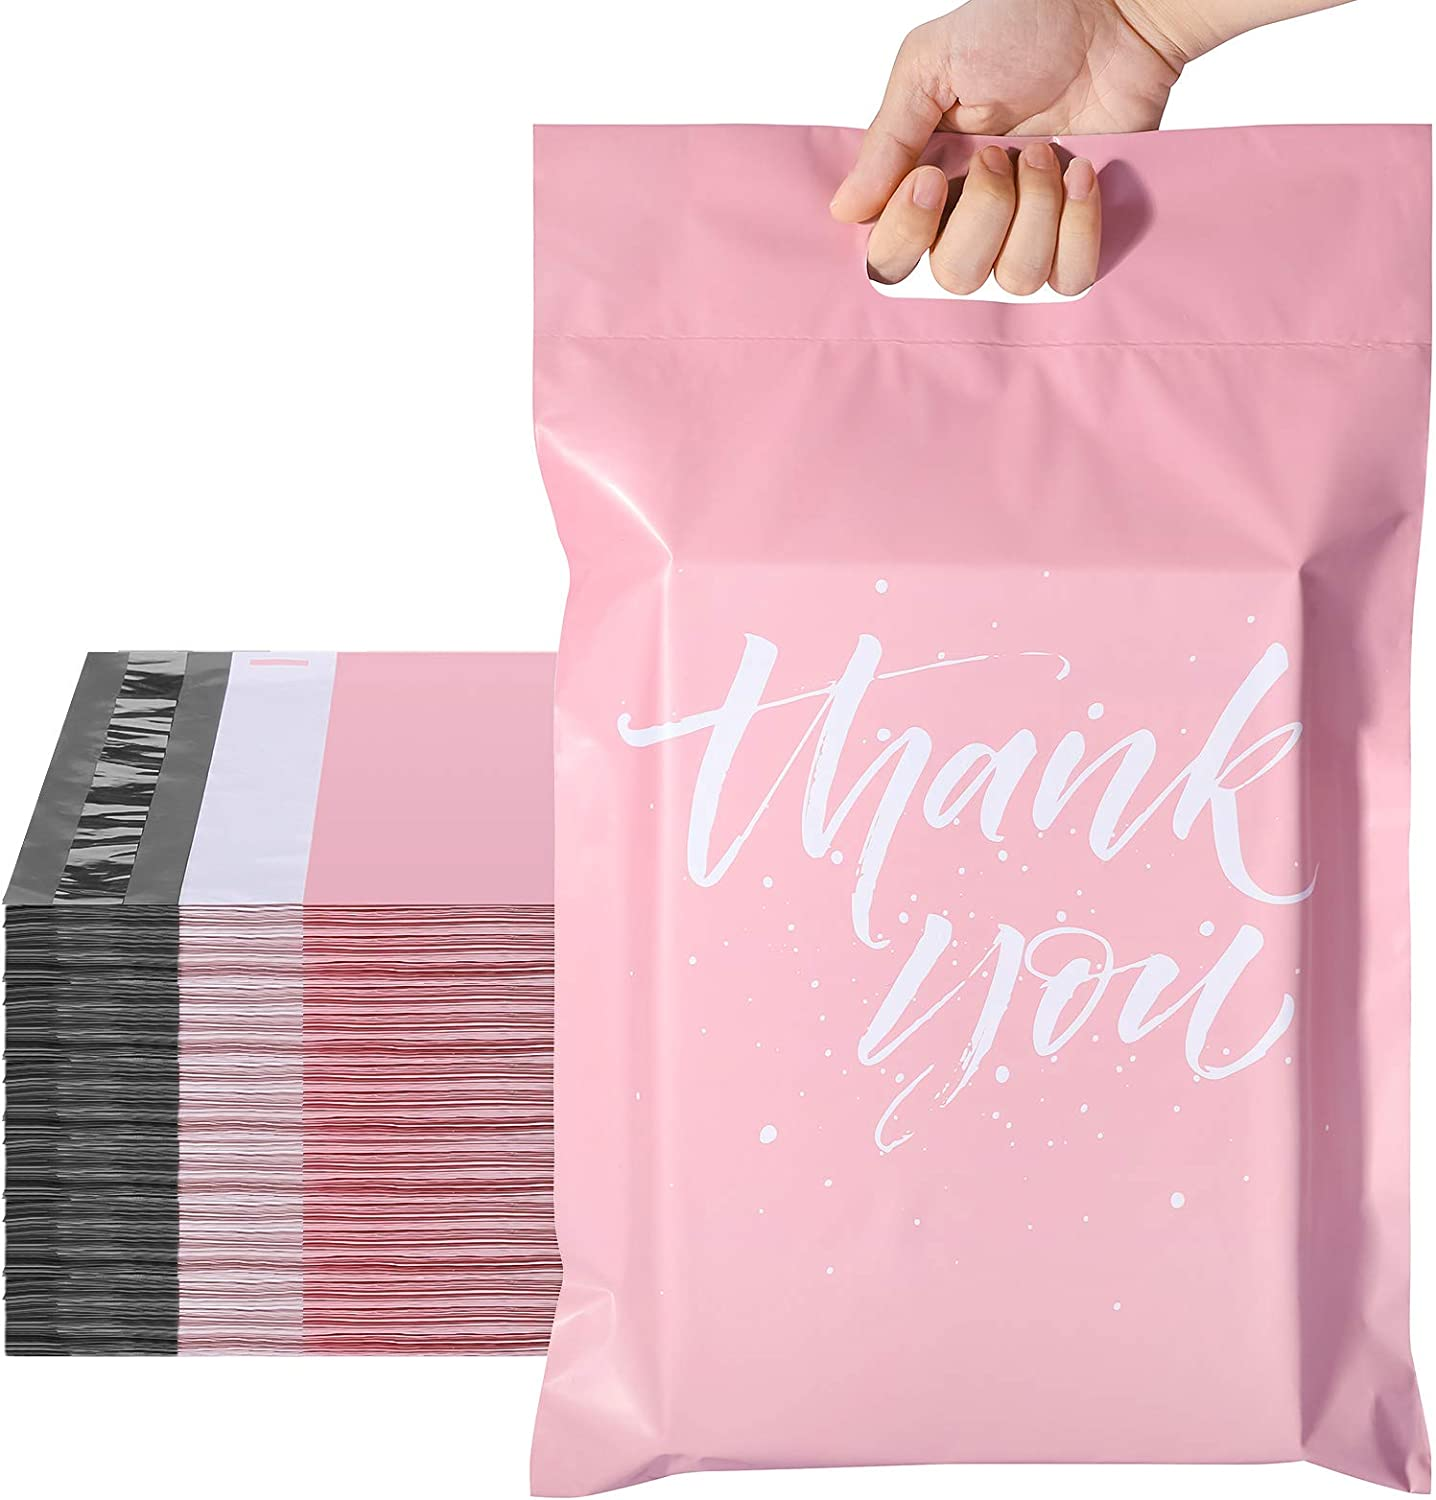 Popular shop is the lowest price challenge Metronic Poly Mailers 10x13 100 Pcs Upgrade Shipping Design Max 79% OFF Ba